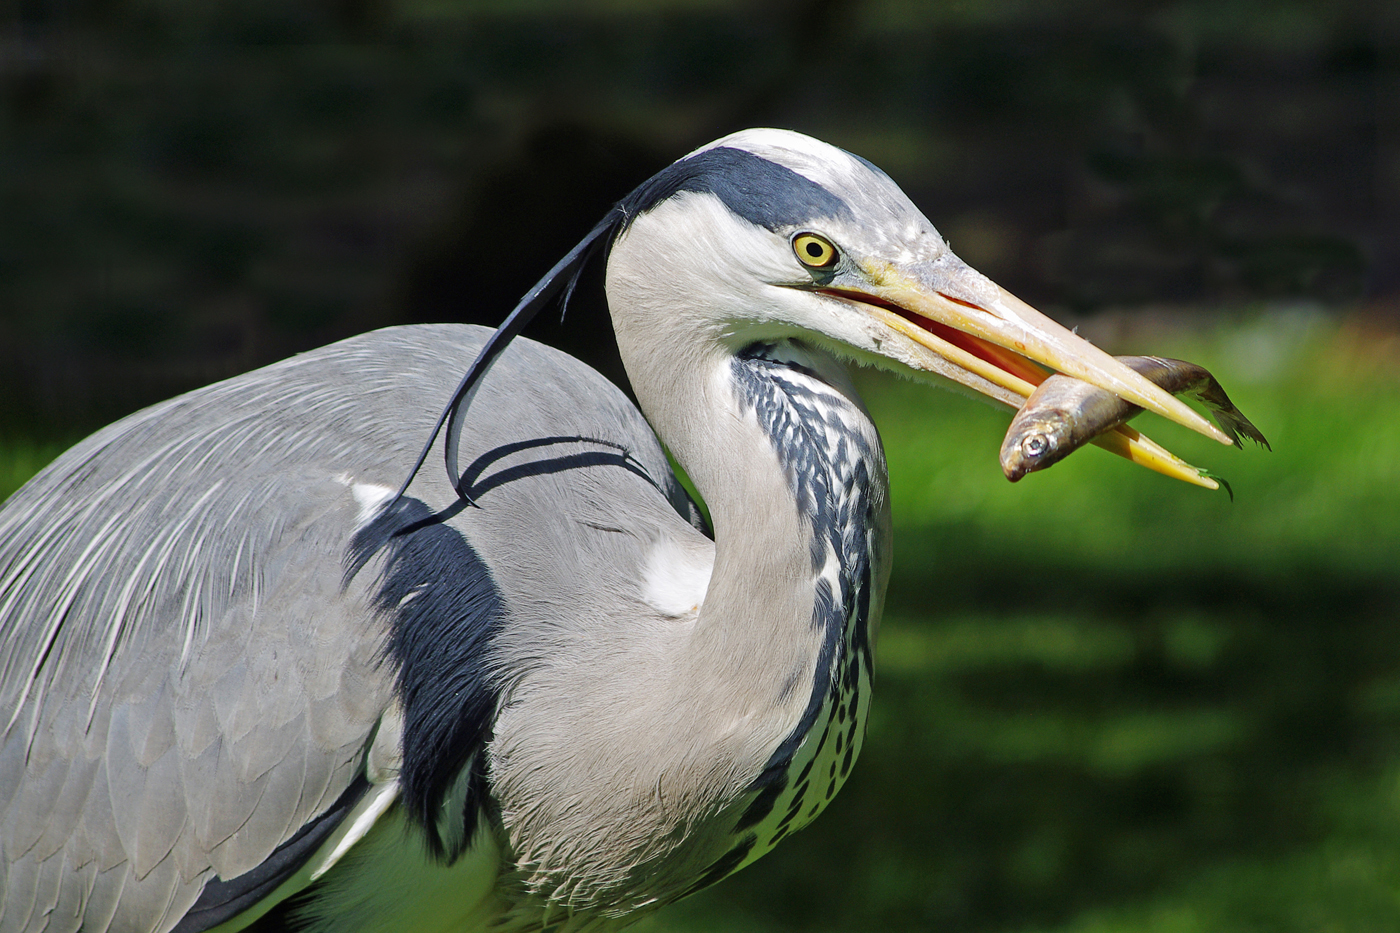 'Heron's Lunch' by Richard Ramsey